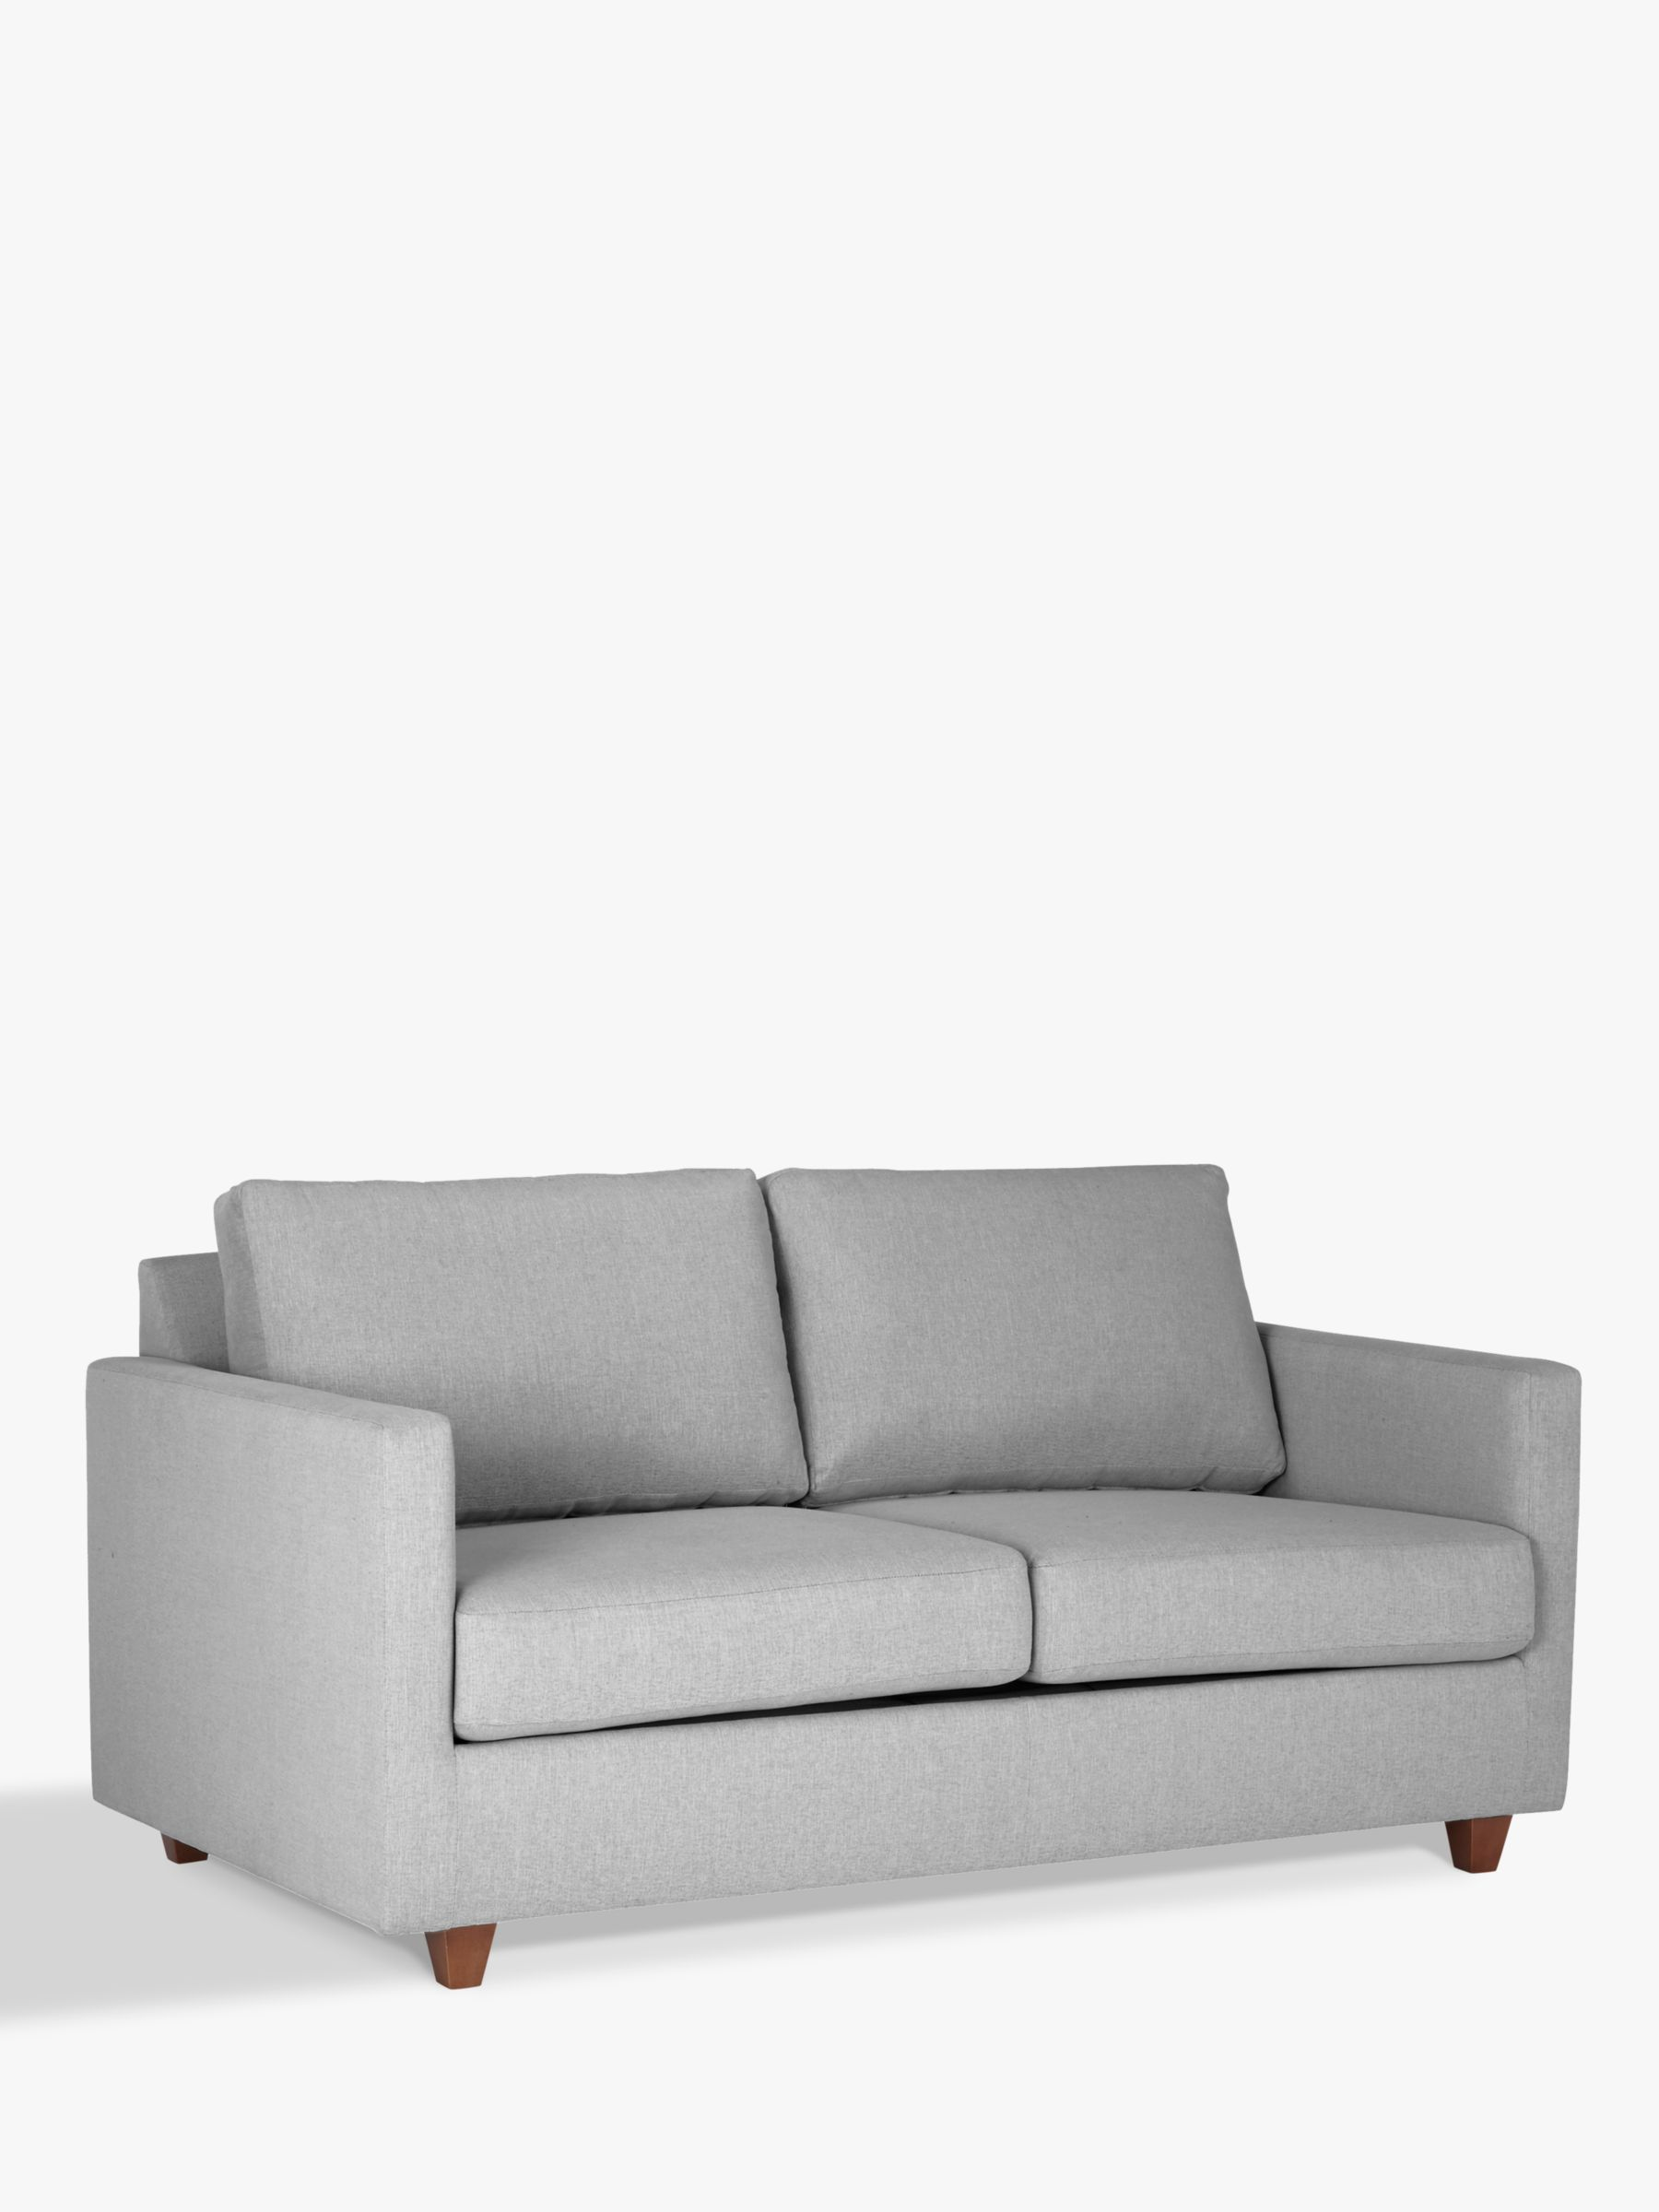 John Lewis Partners Barlow Large 3 Seater Sofa Bed With Memory Foam Mattress 3 Seater Sofa Bed Large Sofa Bed Sofa Bed